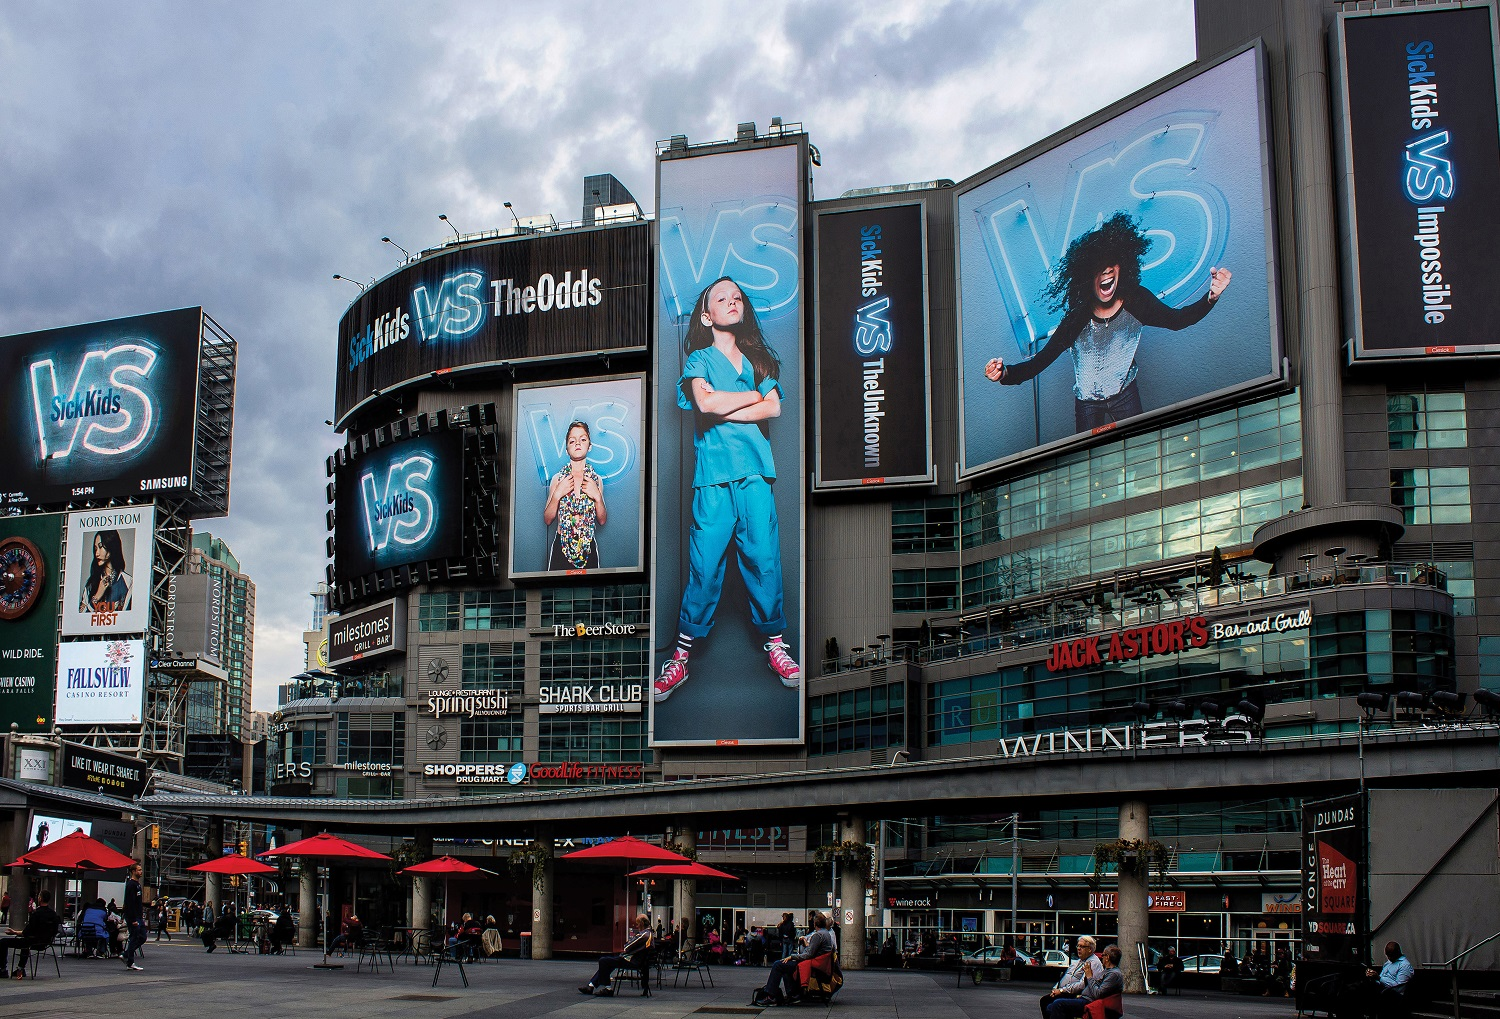 """To change the mentality from """"help us"""" to """"join us,"""" the shop treated SickKids like any other mass brand – creating a new evocative brand platform that helped the hospital net nearly $60 million in a three month window."""